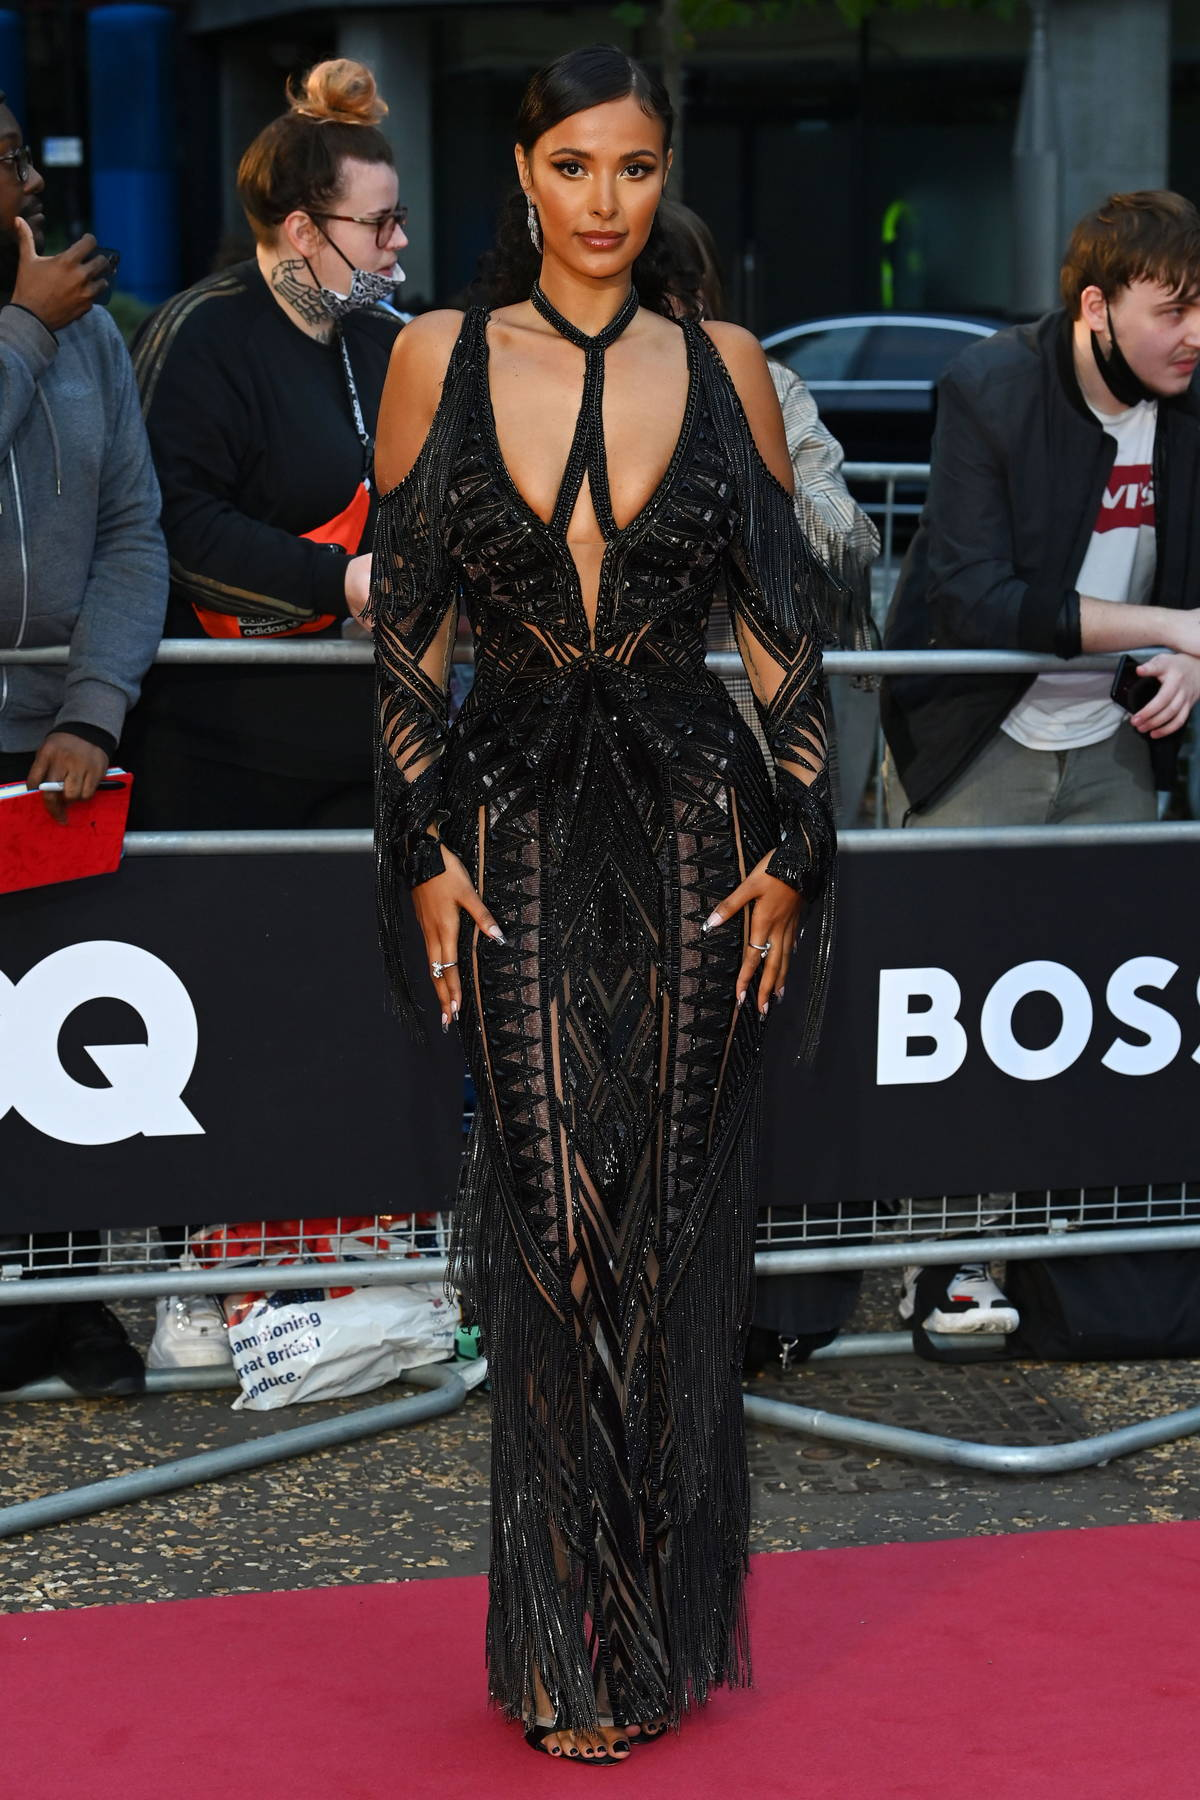 Maya Jama attends the GQ Men Of The Year Awards 2021 at the Tate Modern in London, UK